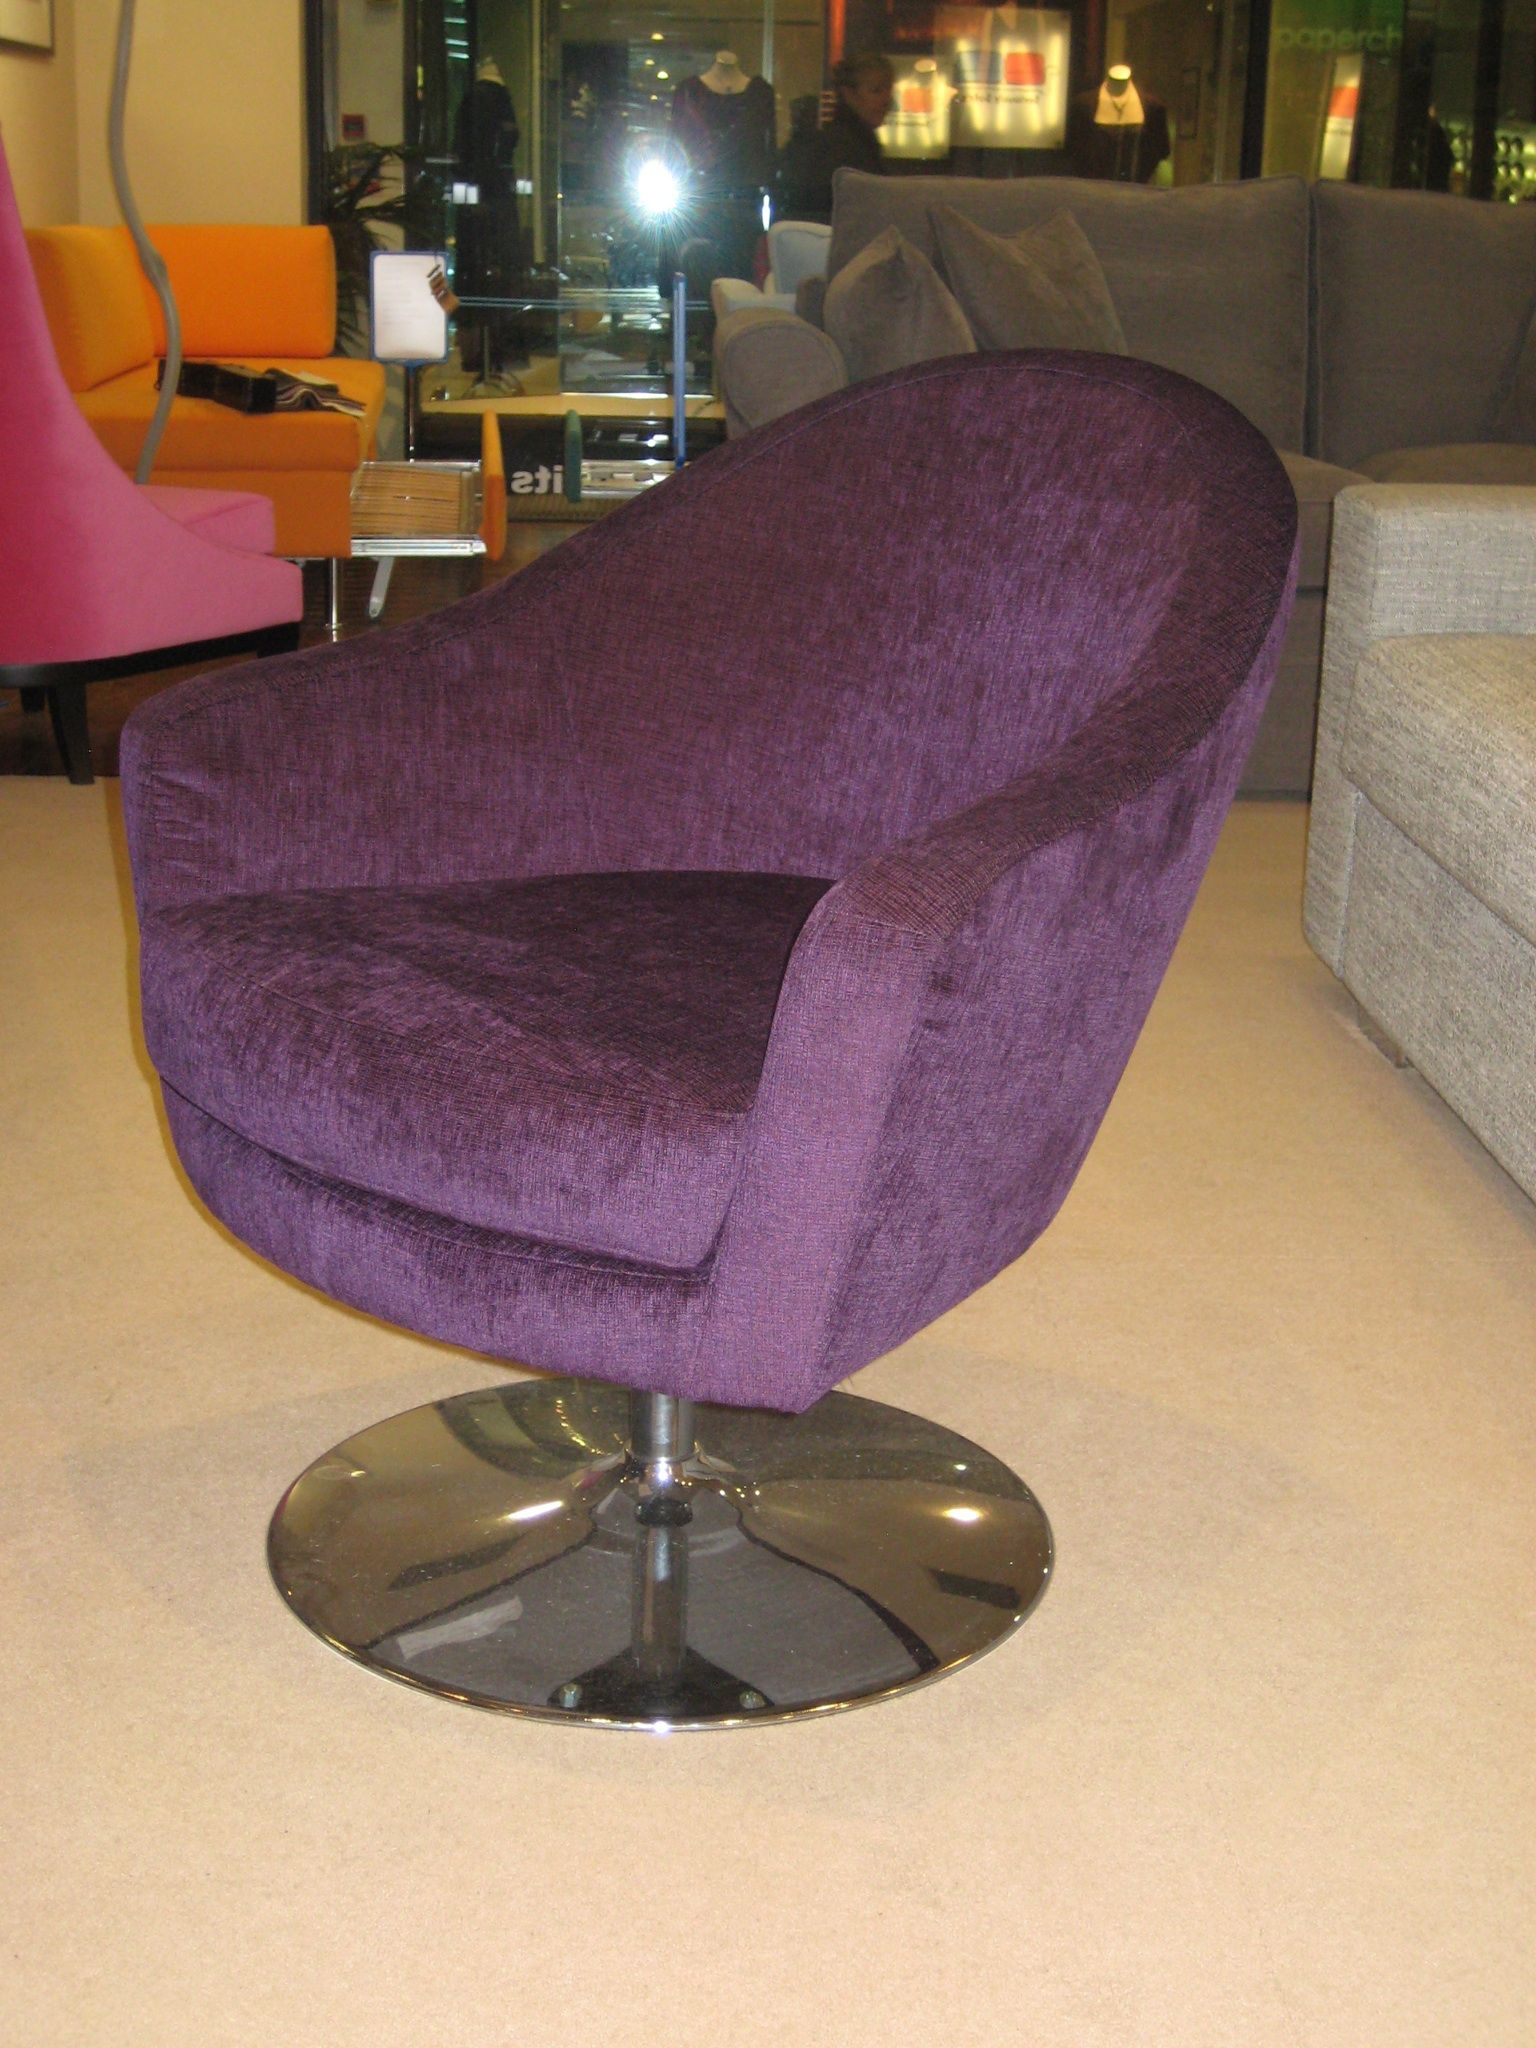 Willow, purple velvety fabric. This is on a chrome swivel